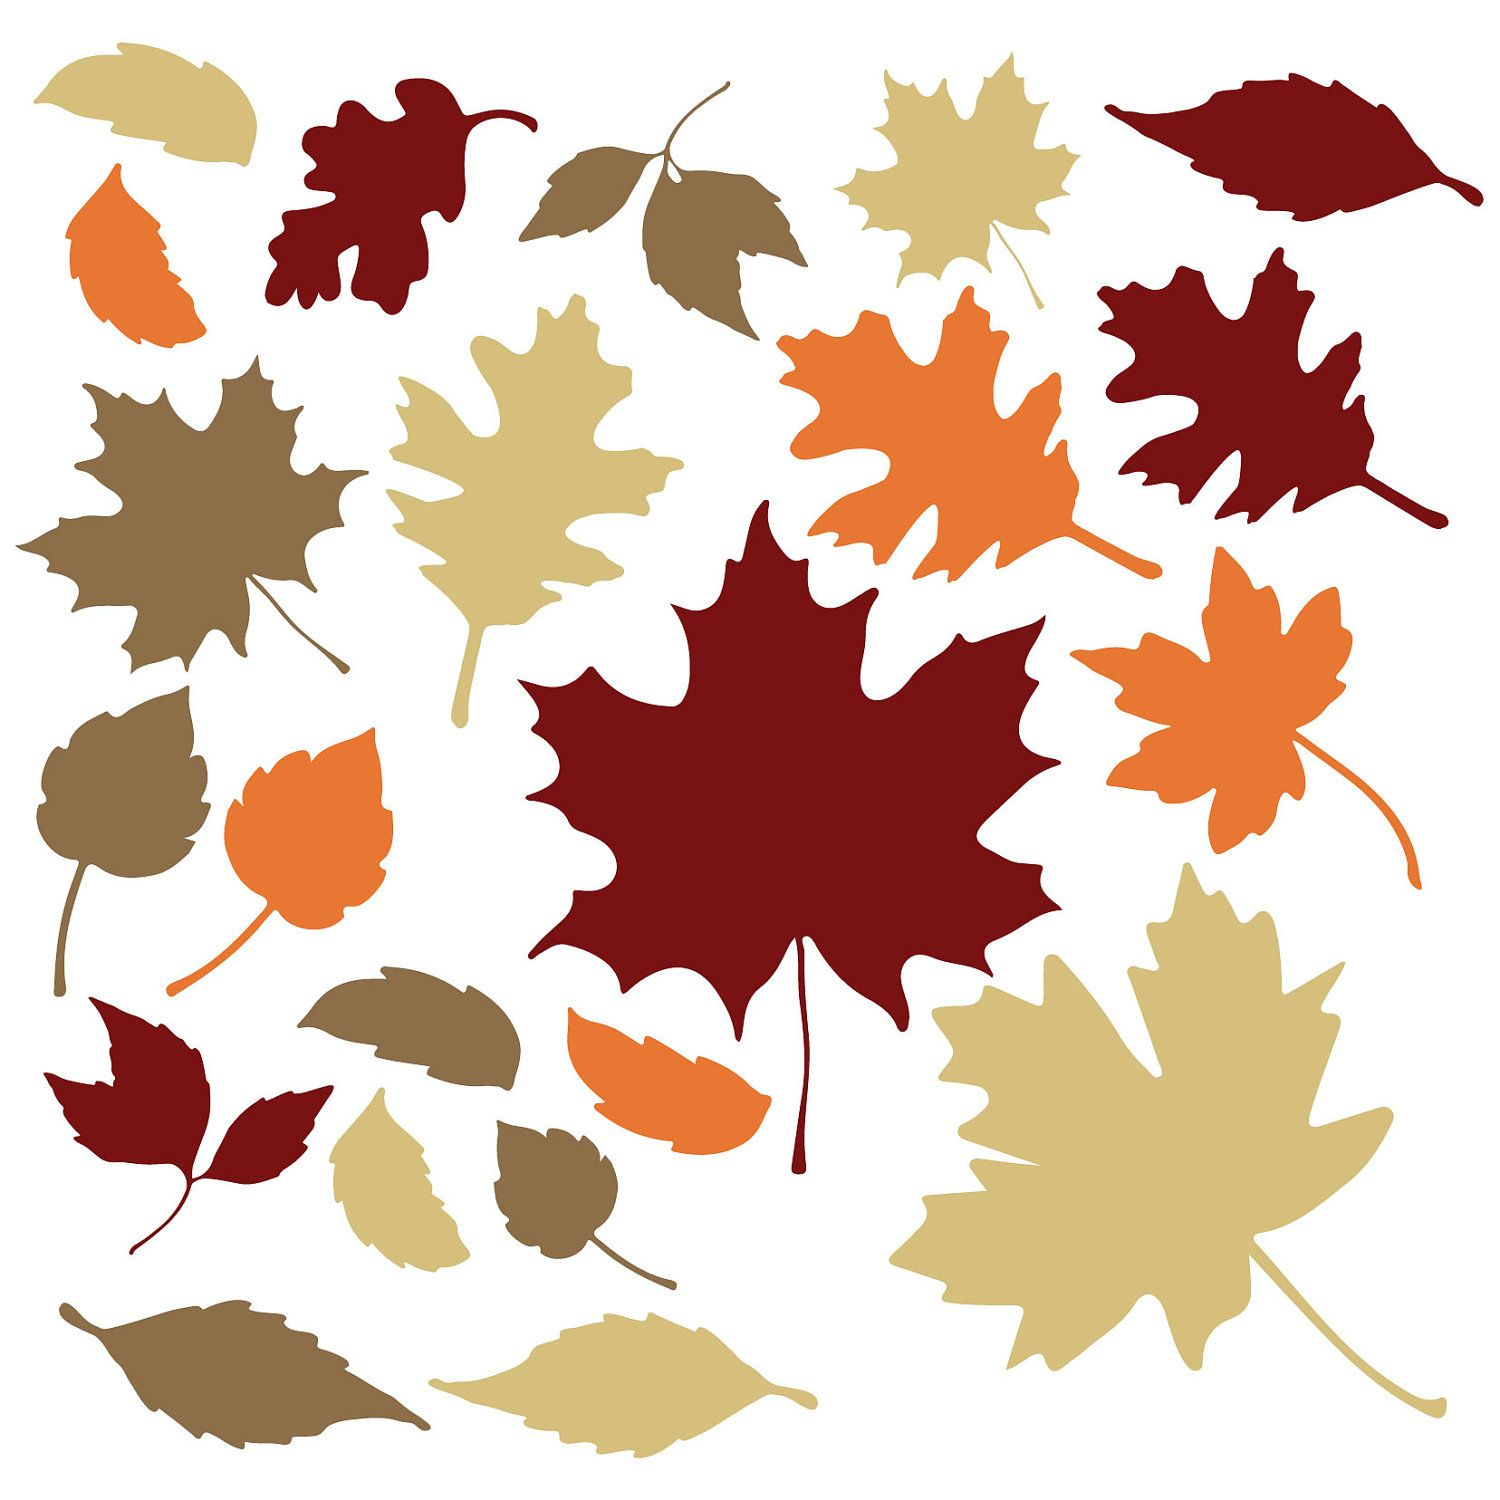 Amazon Com Decalmile Maple Leaf Thanksgiving Wall Decals Autumn Fall Leaves Wall Stickers Living Room Bedroom Tv Wall Art Decor Kitchen Dining